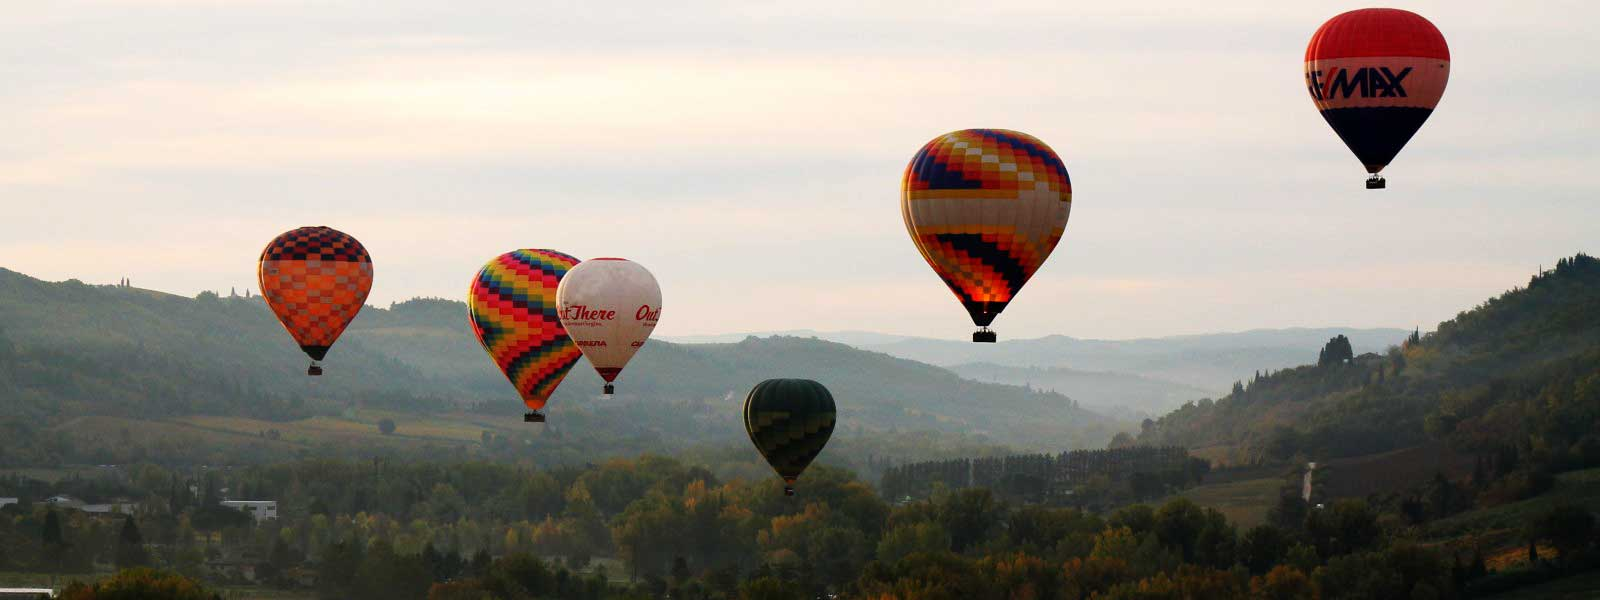 balloon-fleet-in-flight-chianti-tuscany-italy-florence